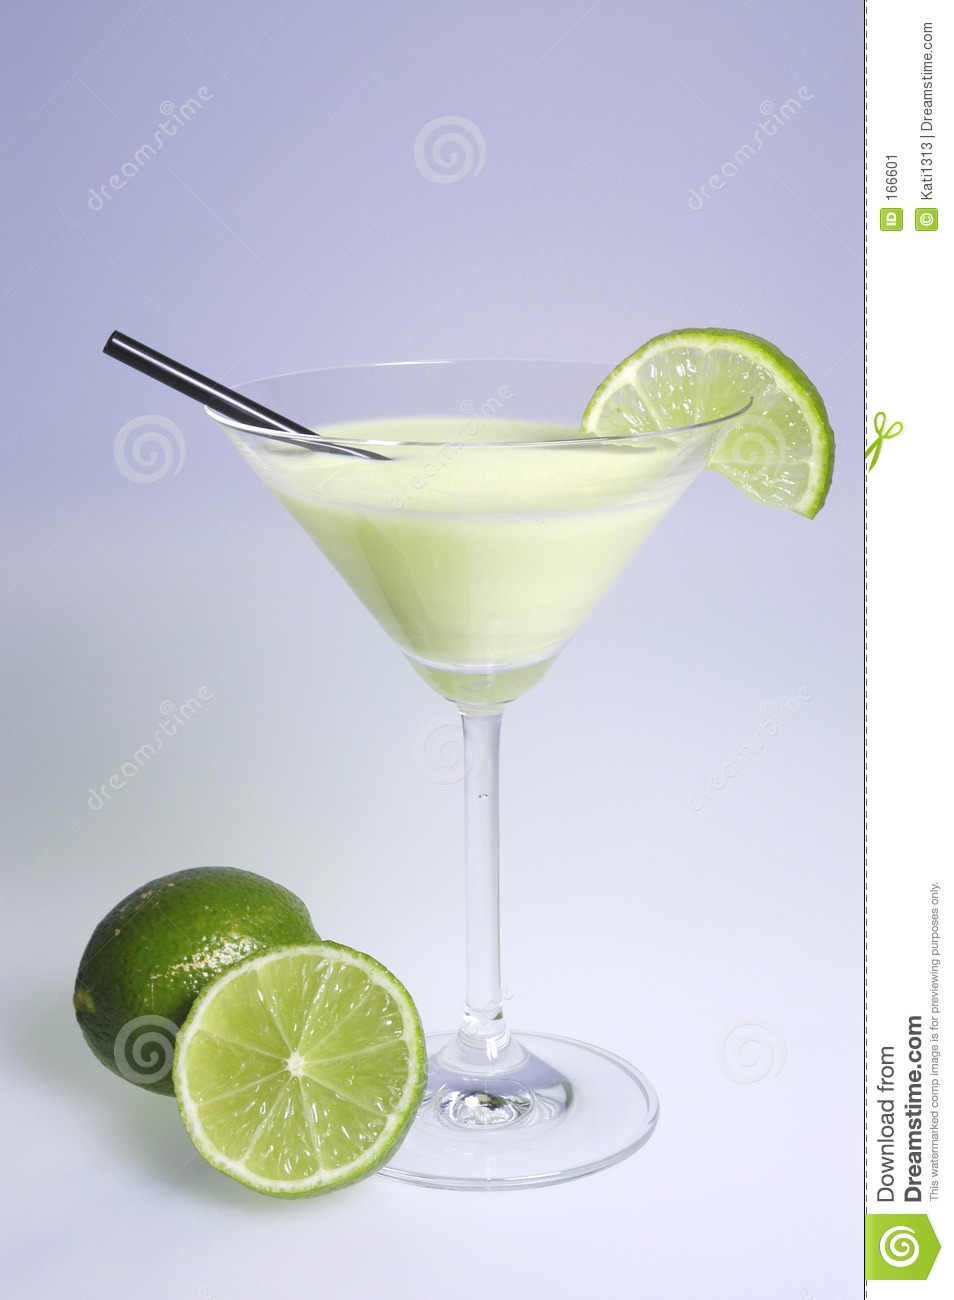 Cocktail with limes